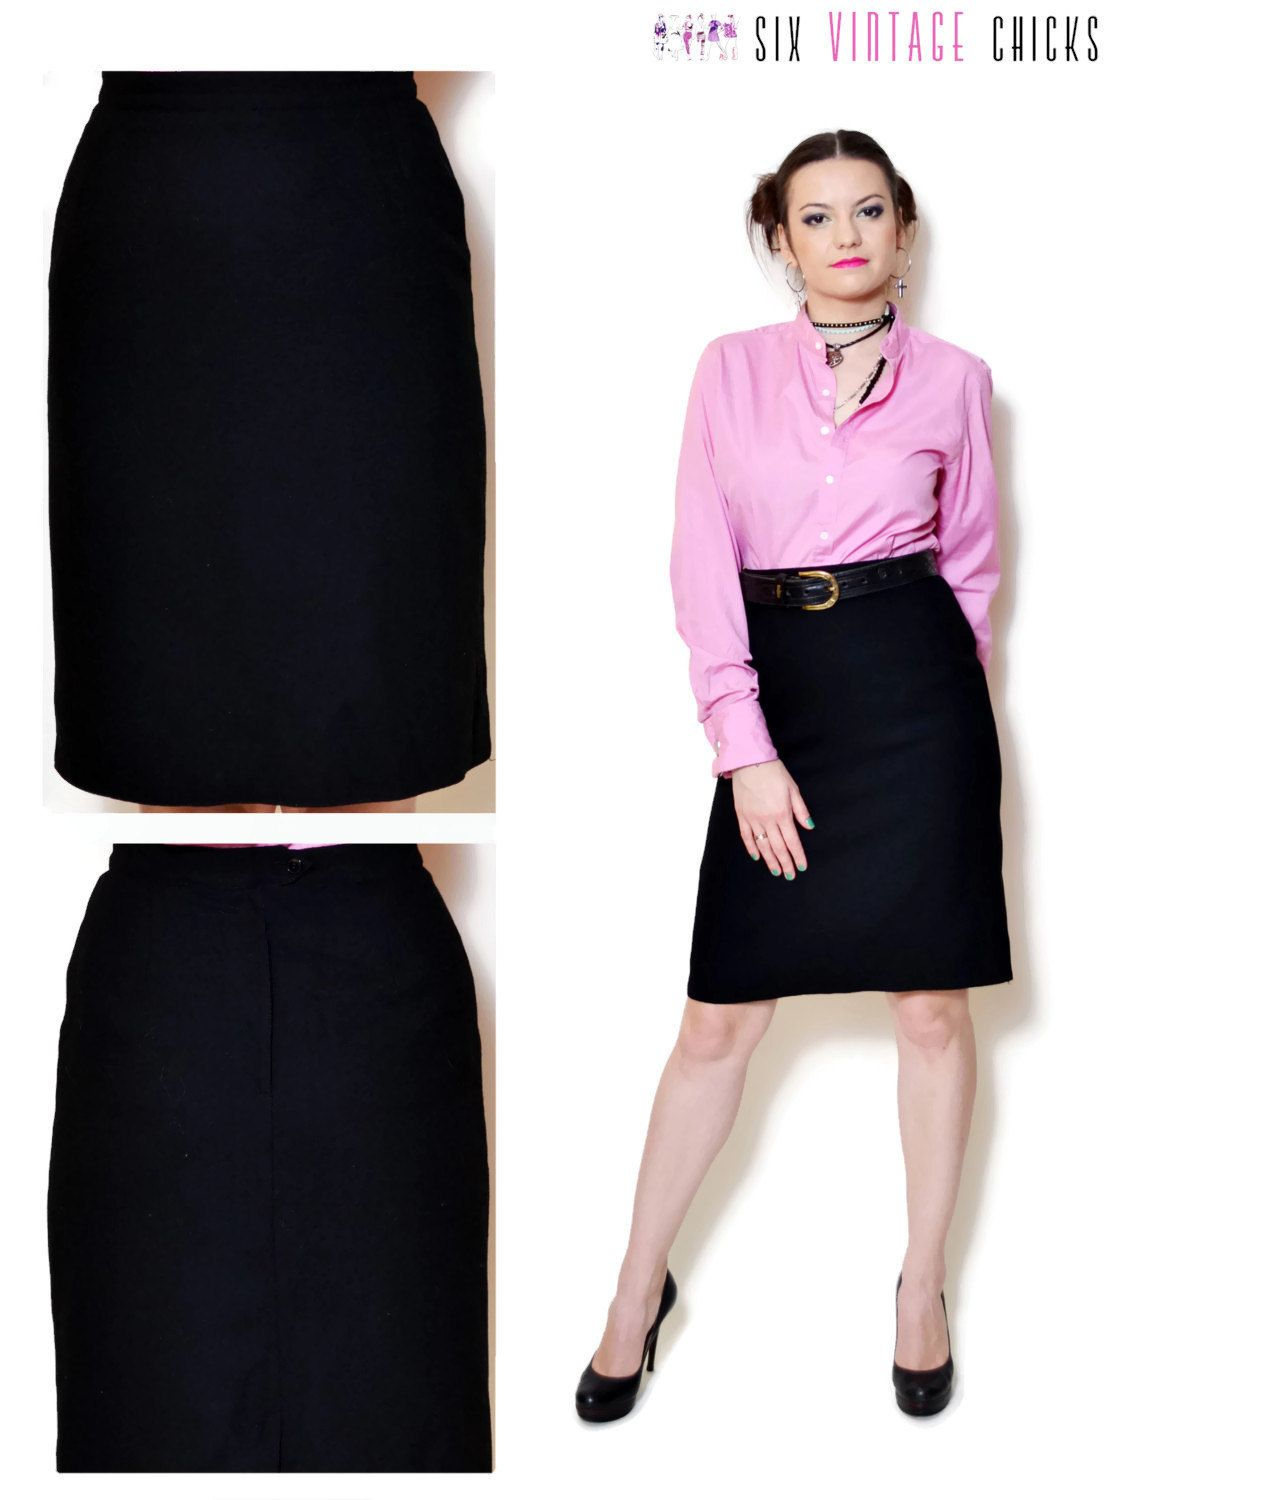 22695761c4 Pencil Skirt Vintage high waisted evening skirt women clothing office  clothes black mini skirt 80s clothing vintage Minimalist Large by  SixVintageChicks on ...